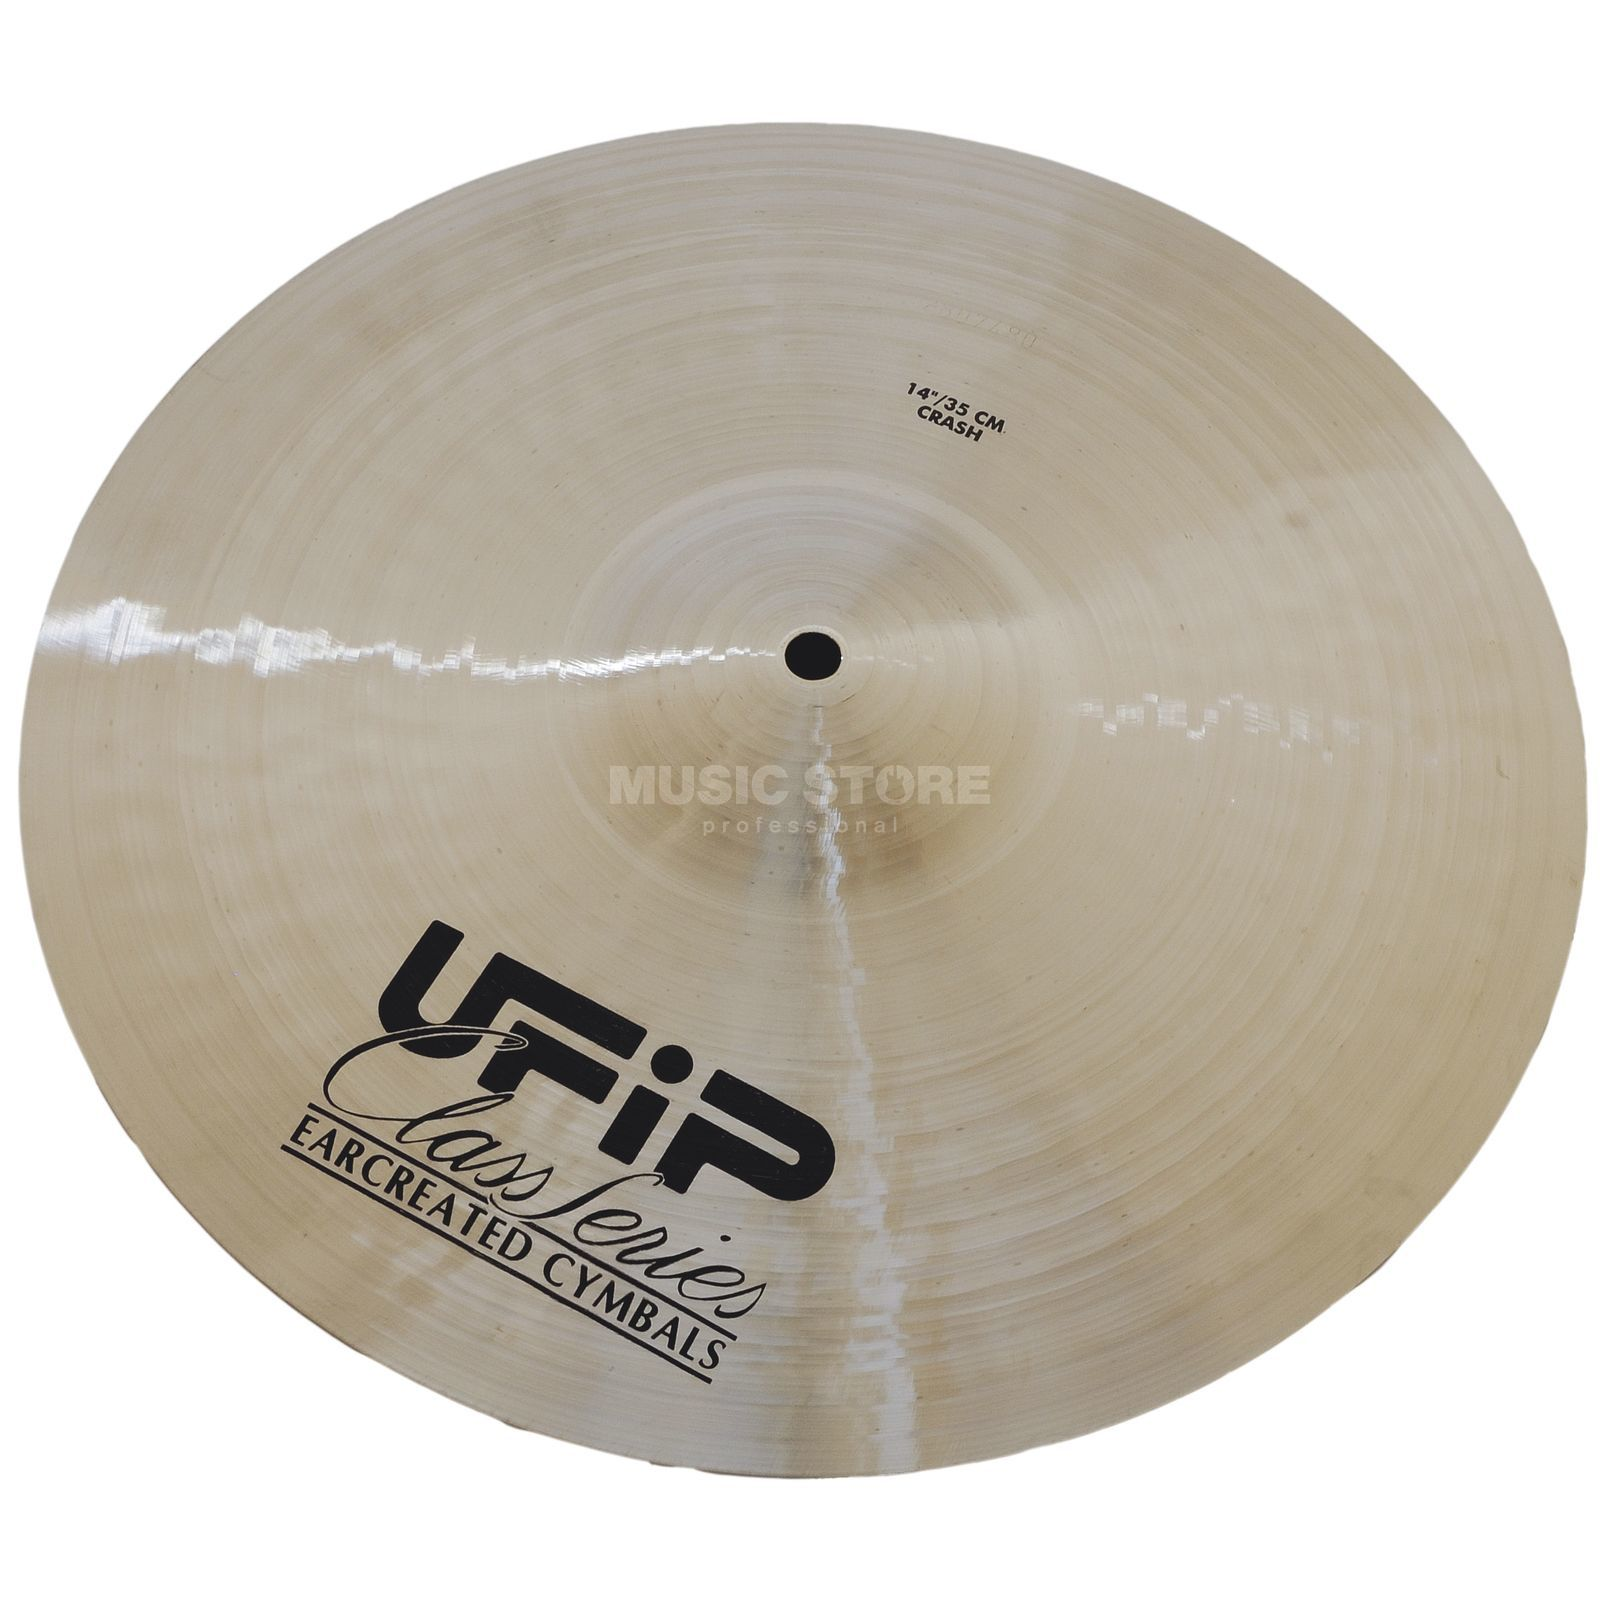 "Ufip Class Light Crash 18"", Natural Finish Produktbild"